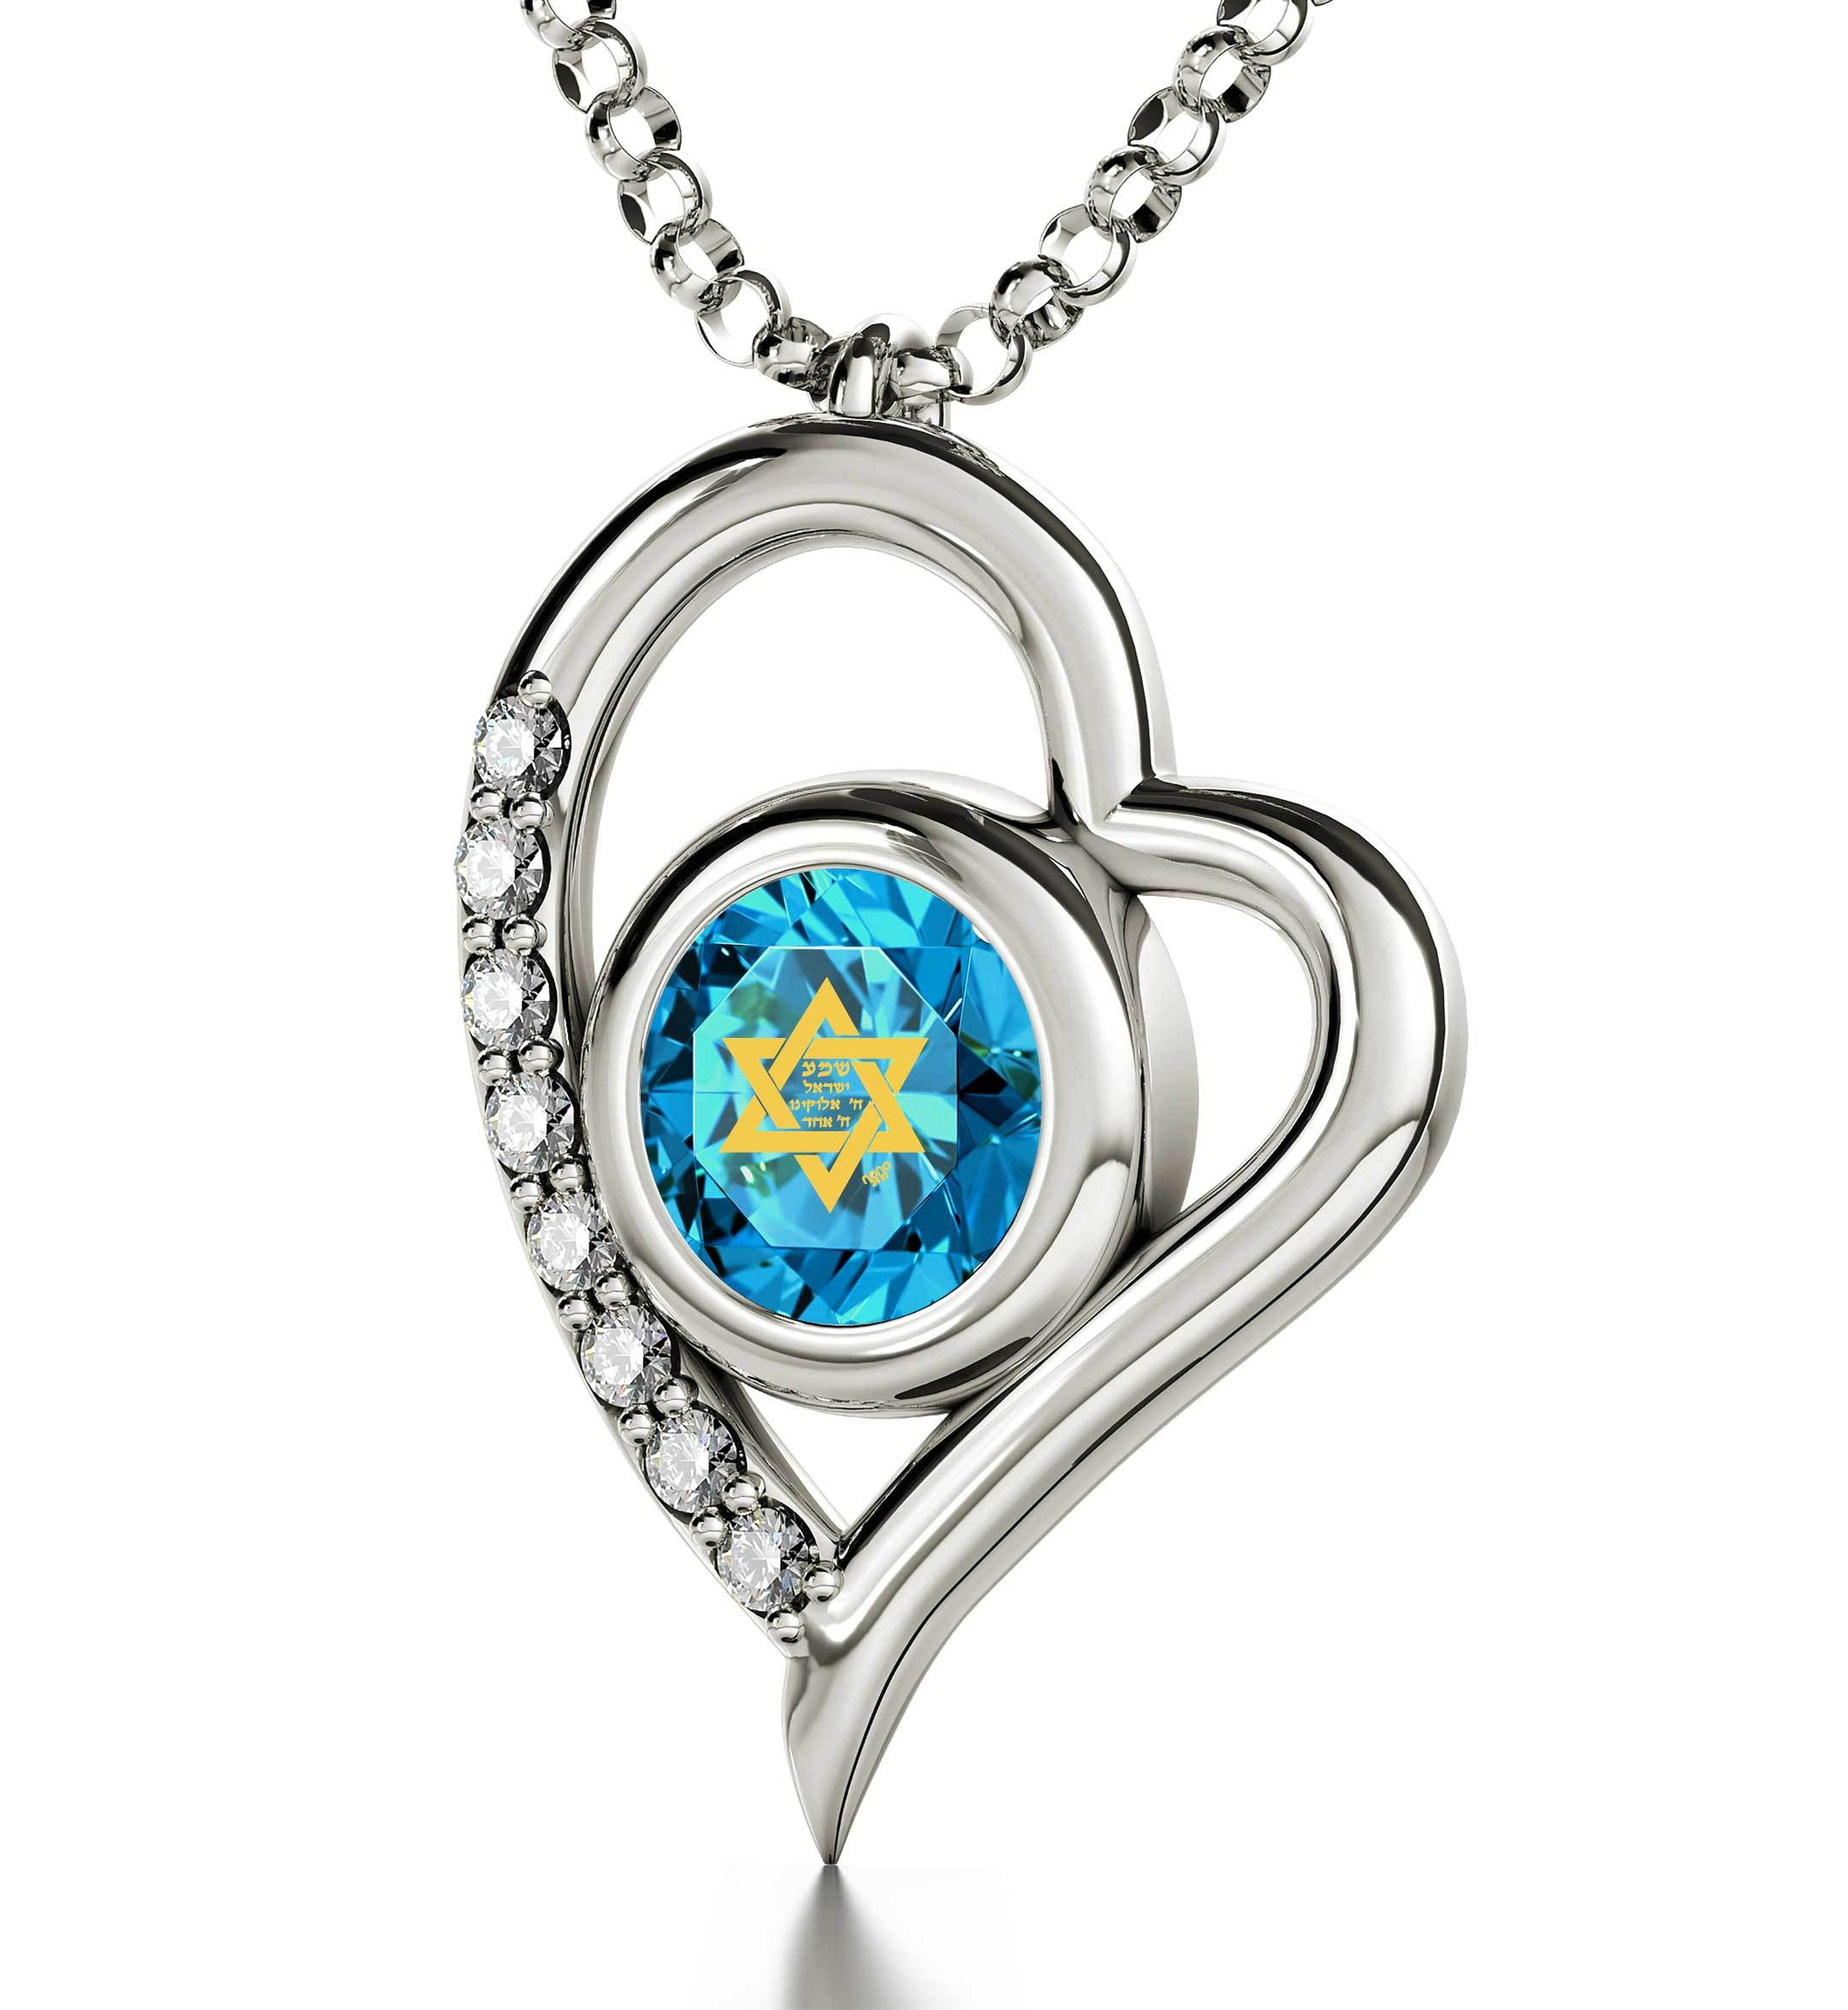 """Shema Yisrael"" Engraved in 24k, Jewish Store with Heart Shaped Necklaces, Israeli Jewelry Designer, Nano Jewelry"